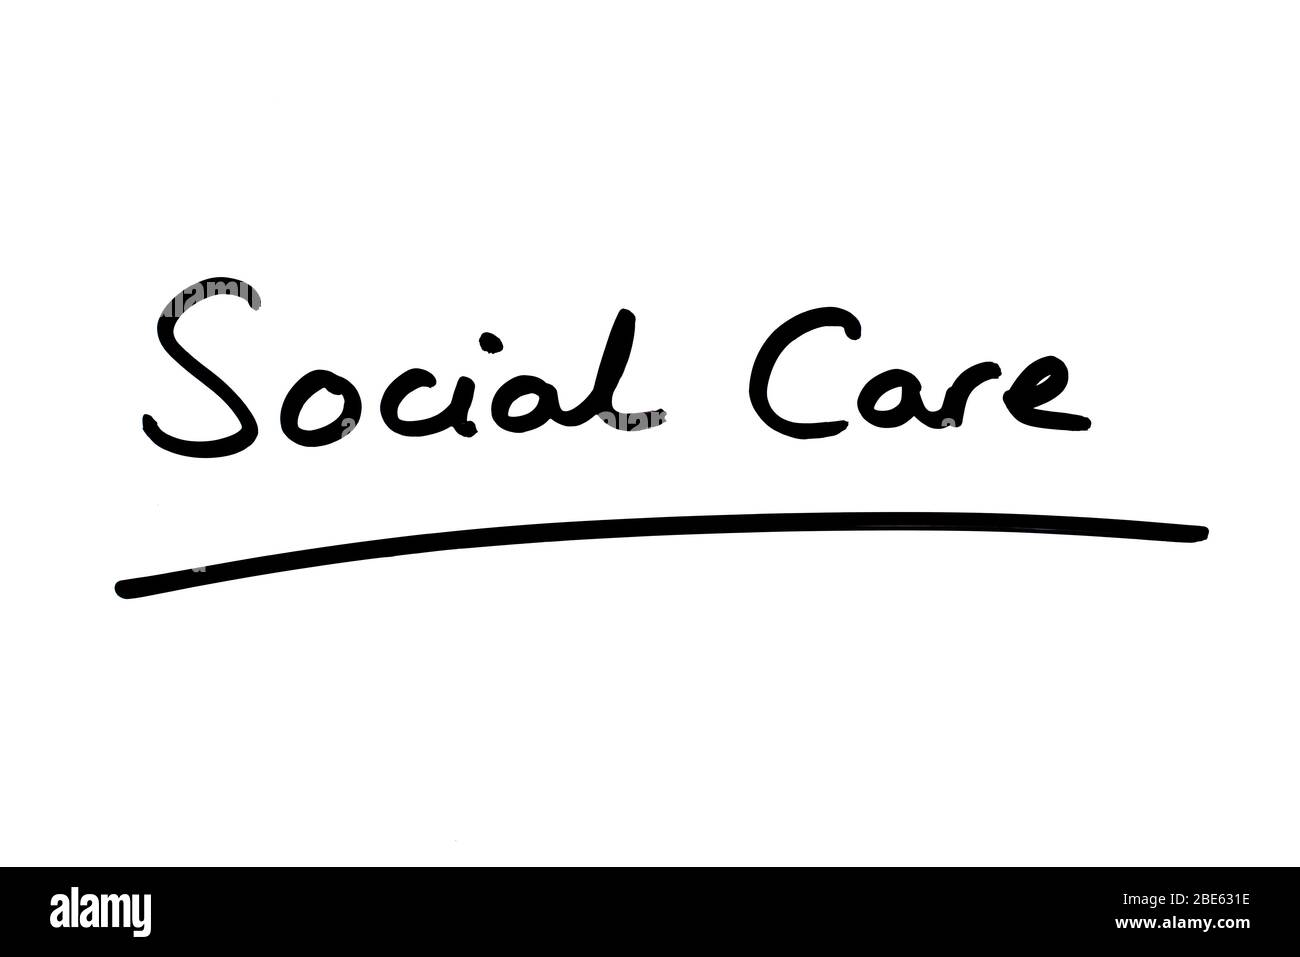 Social Care handwritten on a white background. Stock Photo